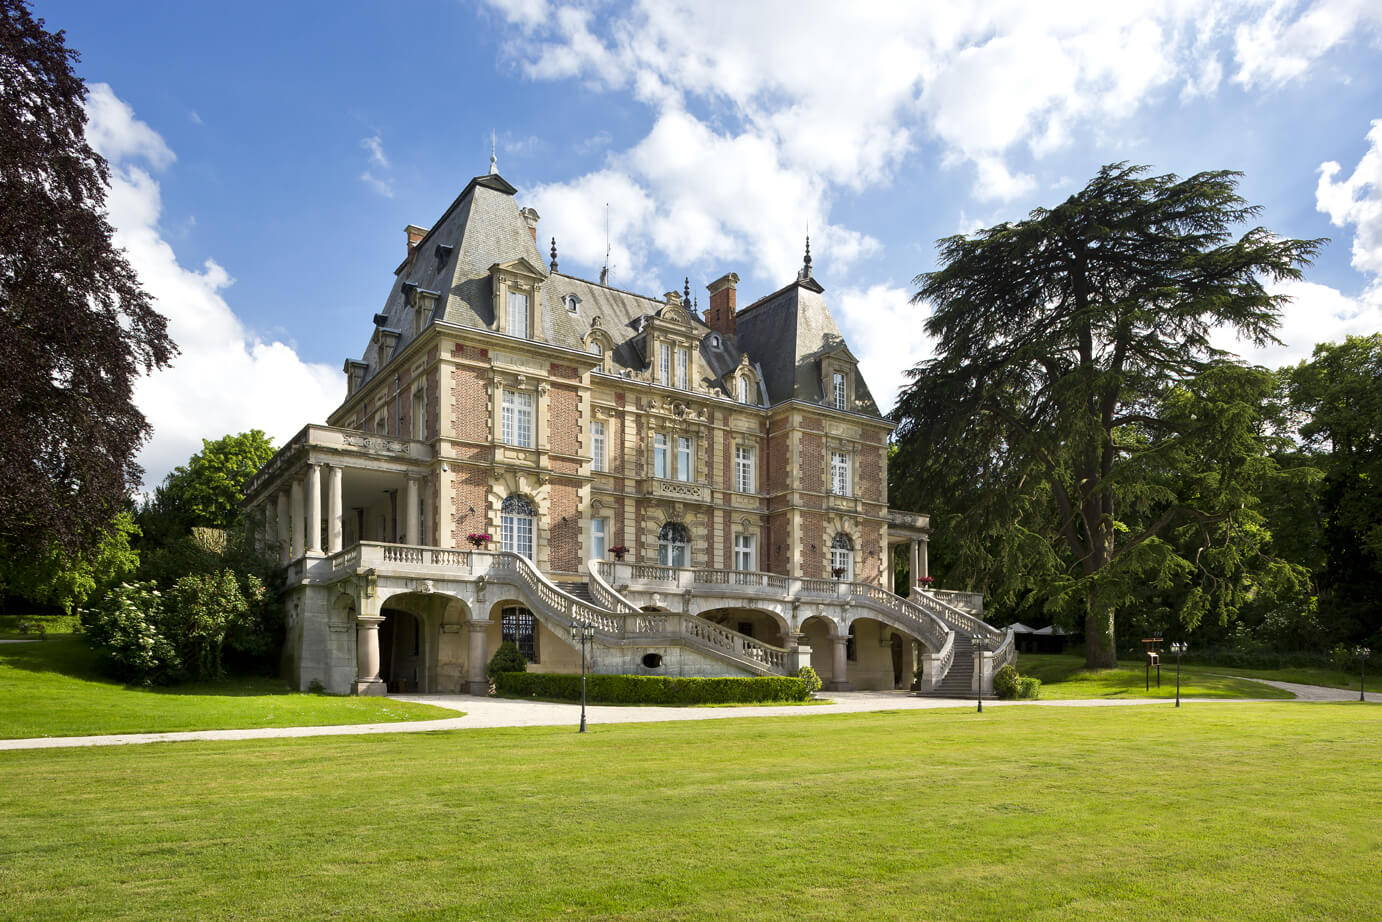 A tailored stay at ch teau bouff mont ch teau bouff mont for Chateaux in france to stay